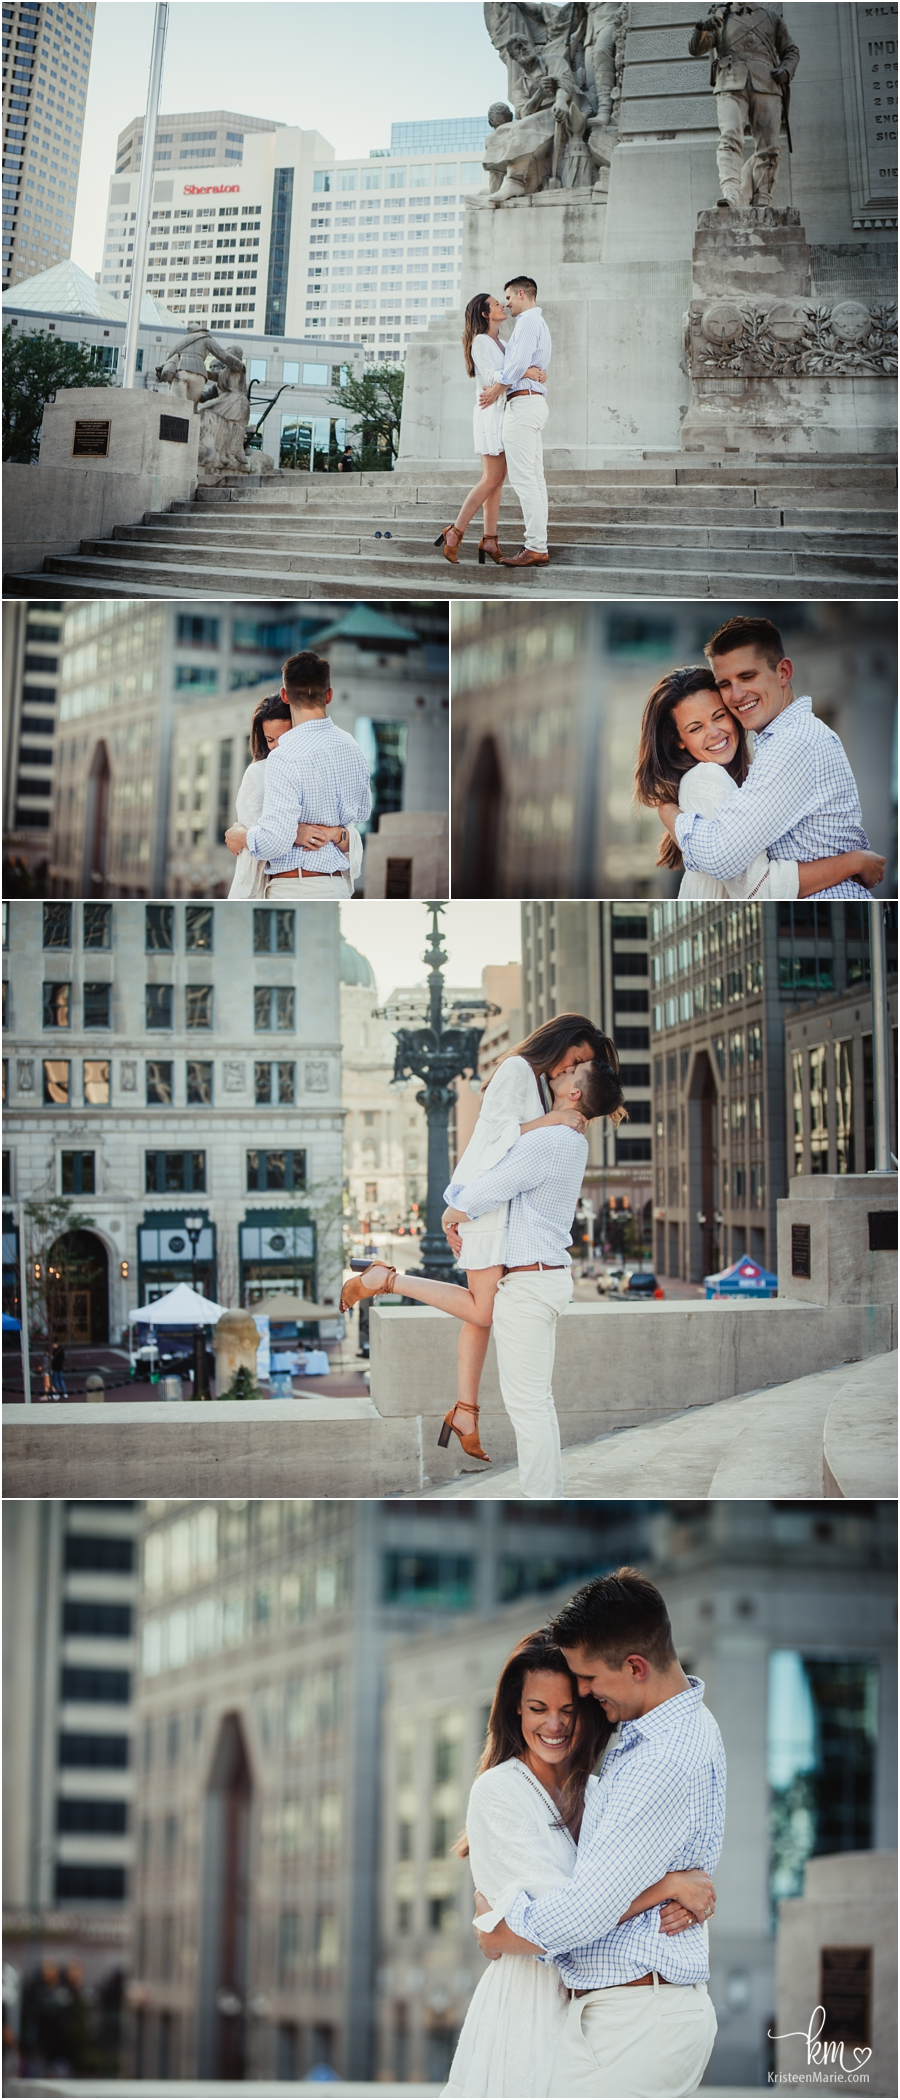 so much emotion - Indy engagement photography